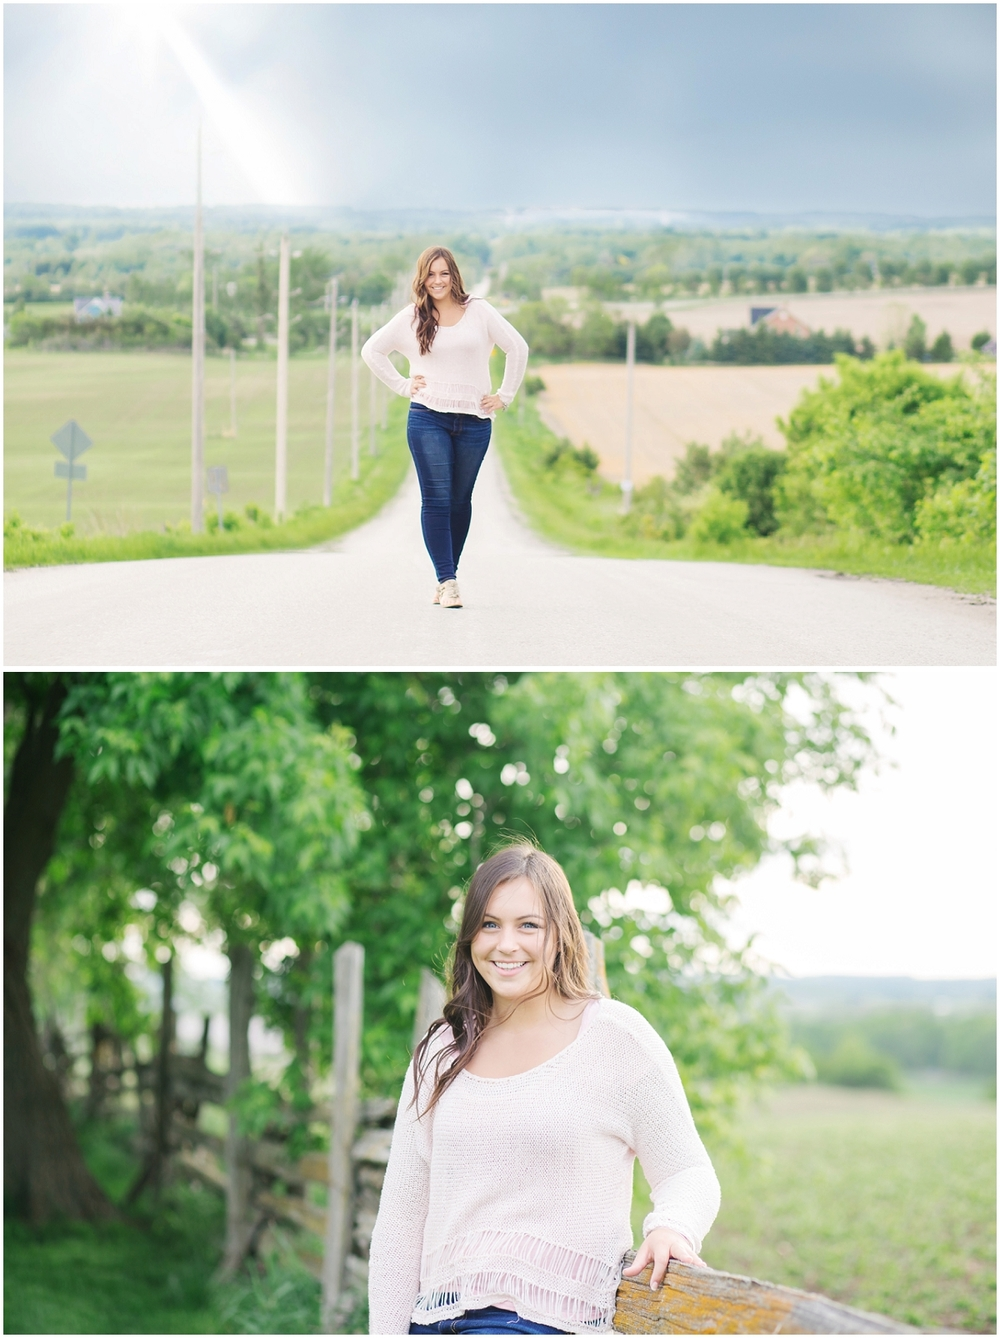 alliston senior photography 248_Alliston-Tottenham-High-School-Senior Photography FIlm.jpg